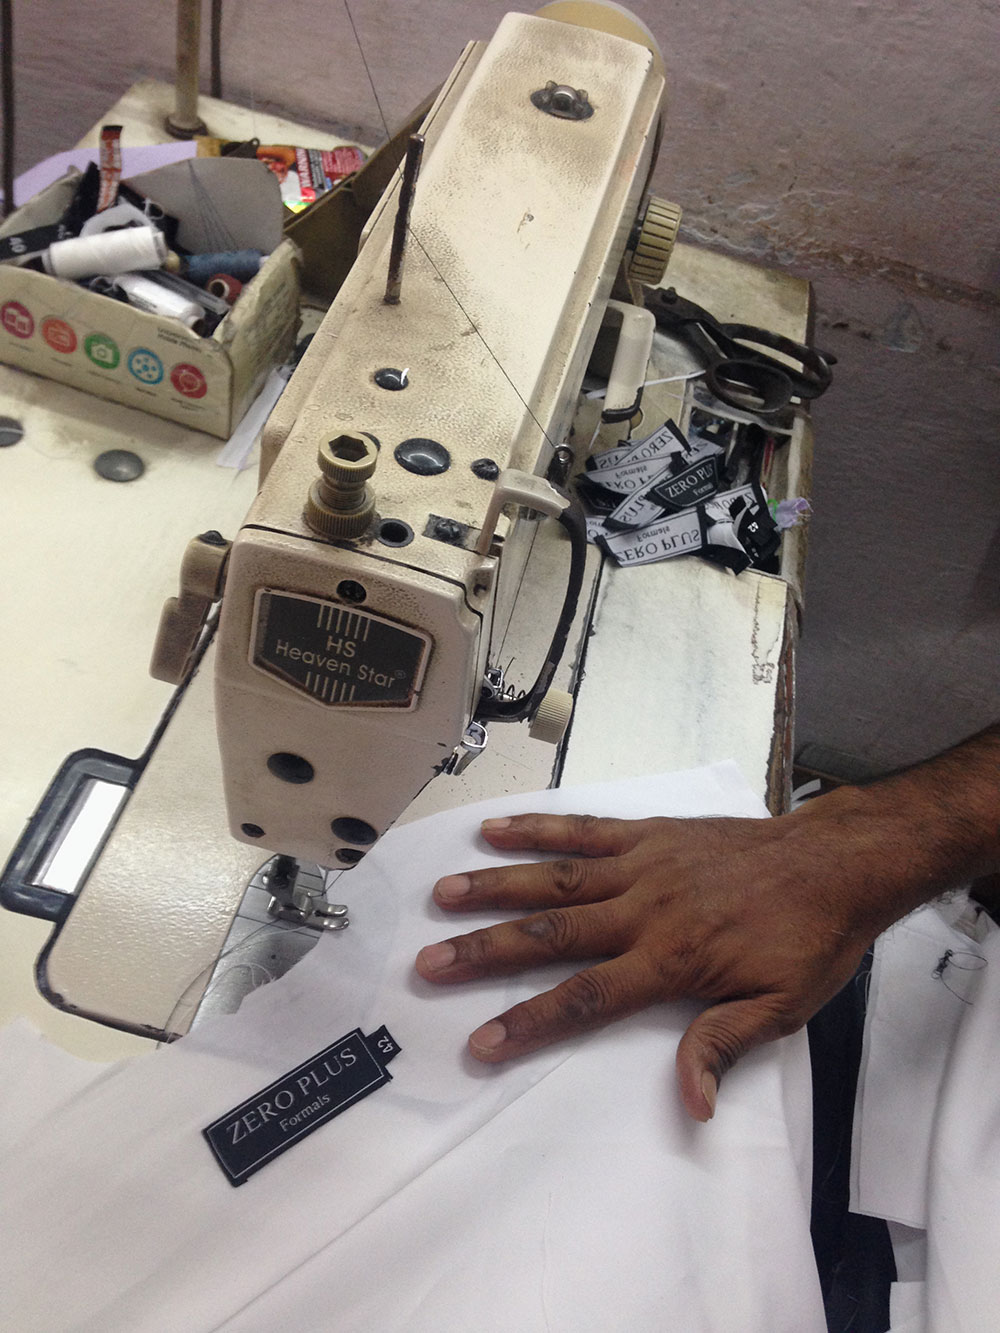 A worker stitching a shirt for Zero Plus at the garment factory in Delhi. Photo credit: Sunaina Kumar